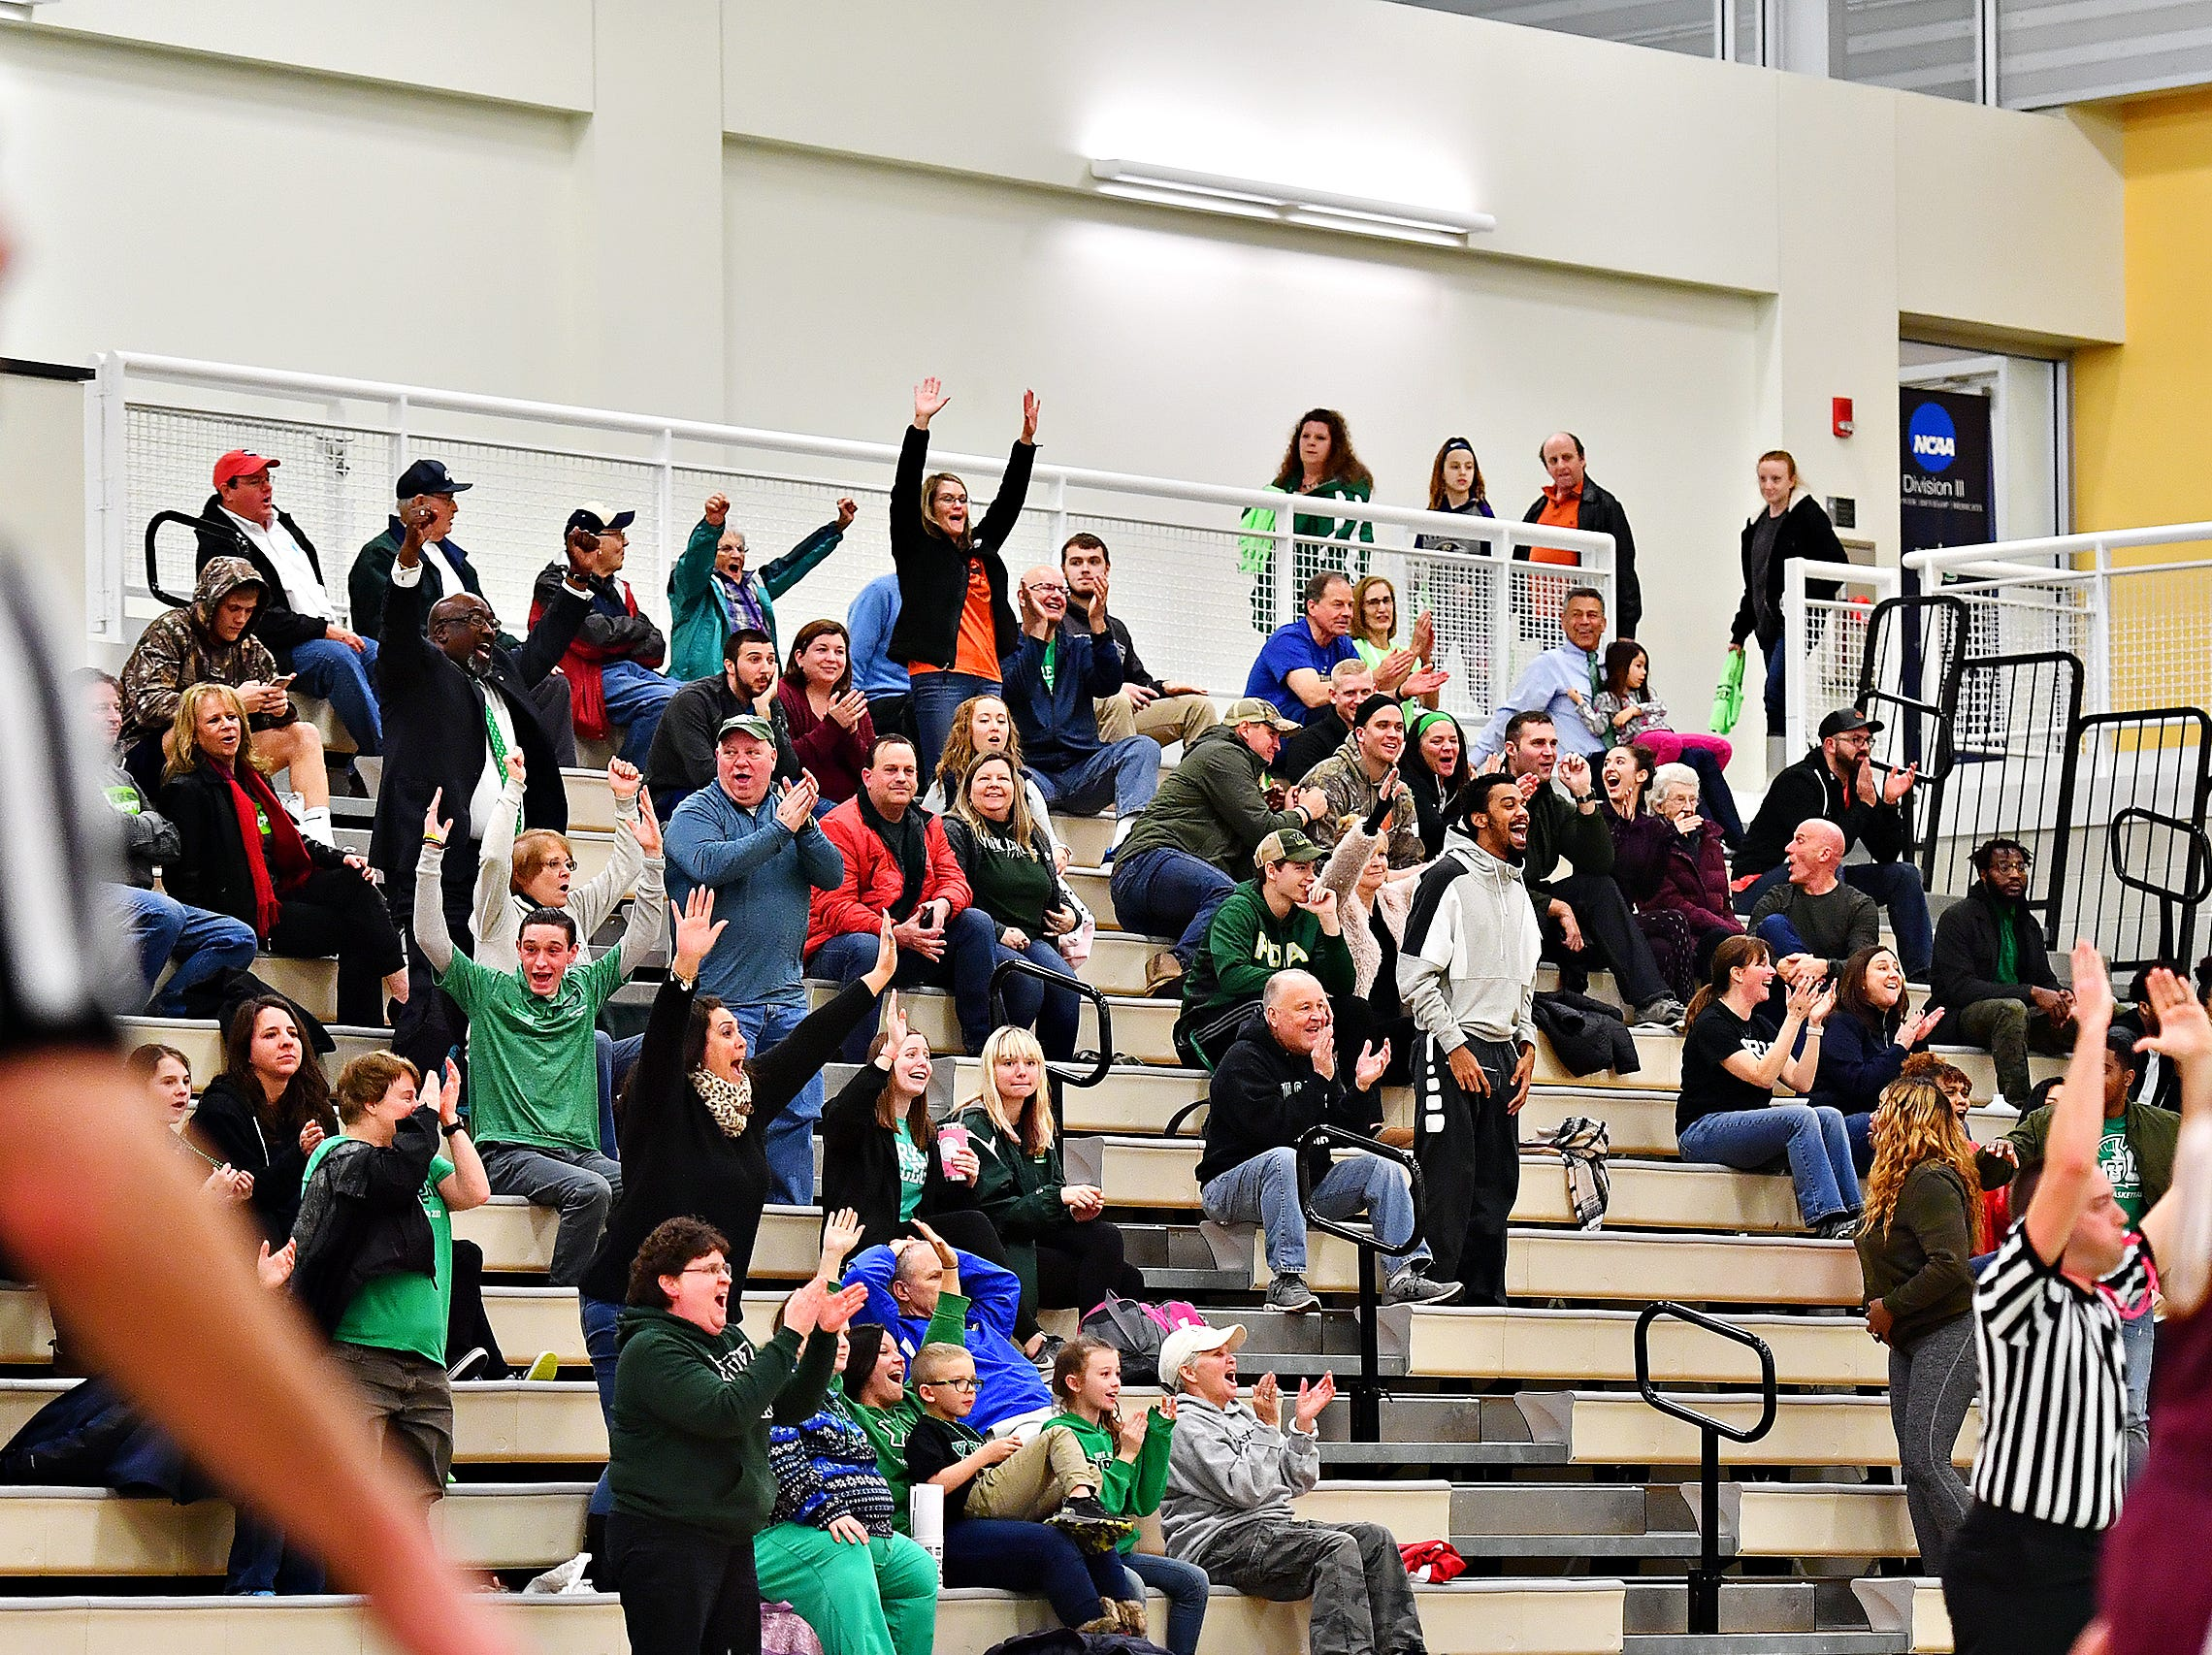 Fans react as York College's Debria Hendricks scores on the buzzer at halftime during women's basketball action against Salisbury at Grumbacher Sport and Fitness Center at York College of Pennsylvania in Spring Garden Township, Wednesday, Feb. 6, 2019. Dawn J. Sagert photo